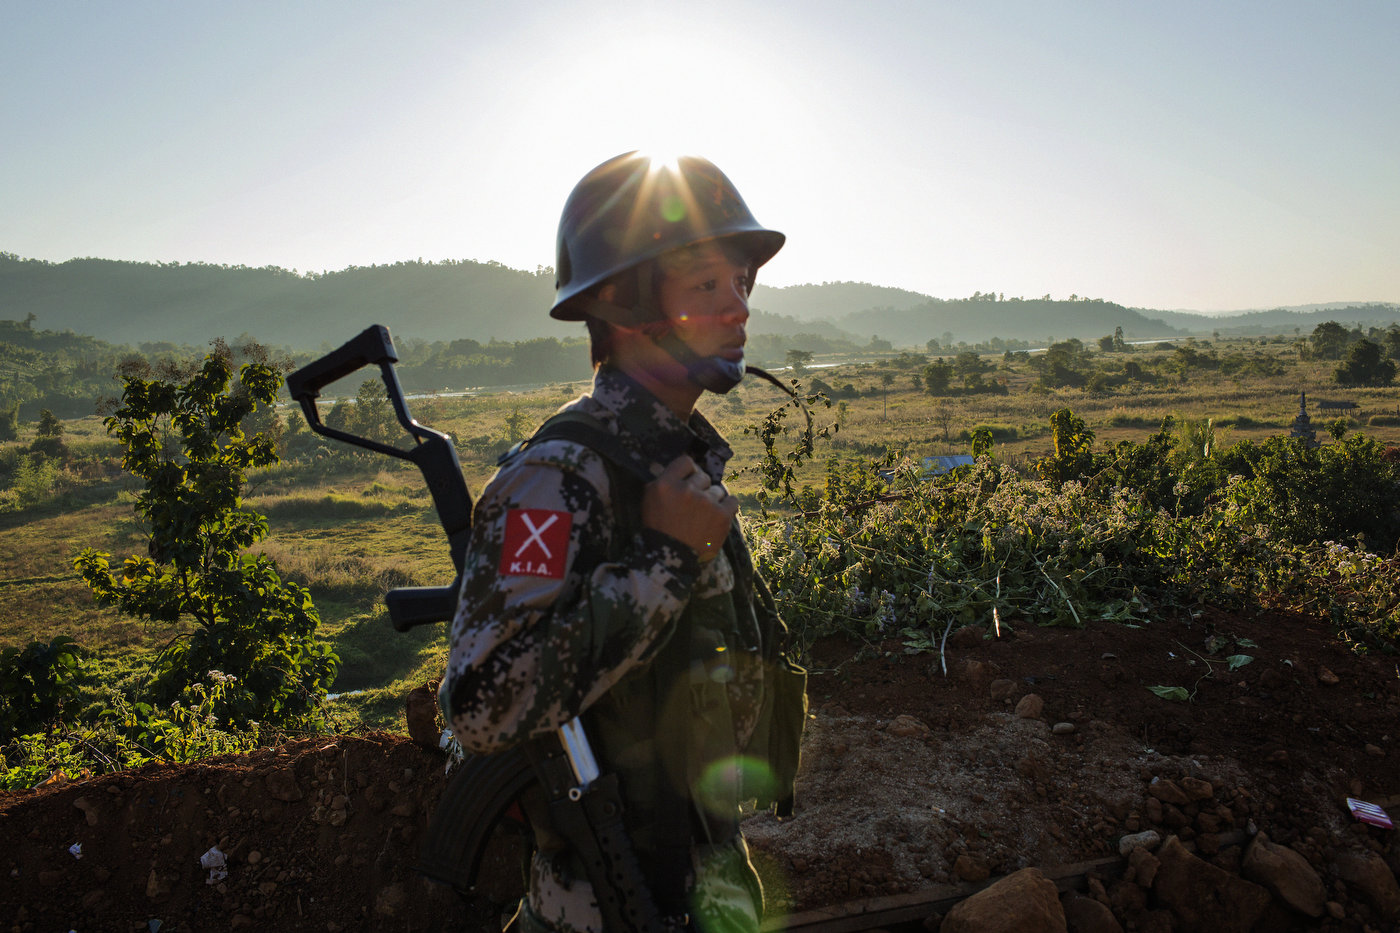 Kachin Independence Army (KIA) soldiers patrol near the village of Lajayang, a place of recent fighting, outside of Laiza, Kachin State in northern Myanmar.